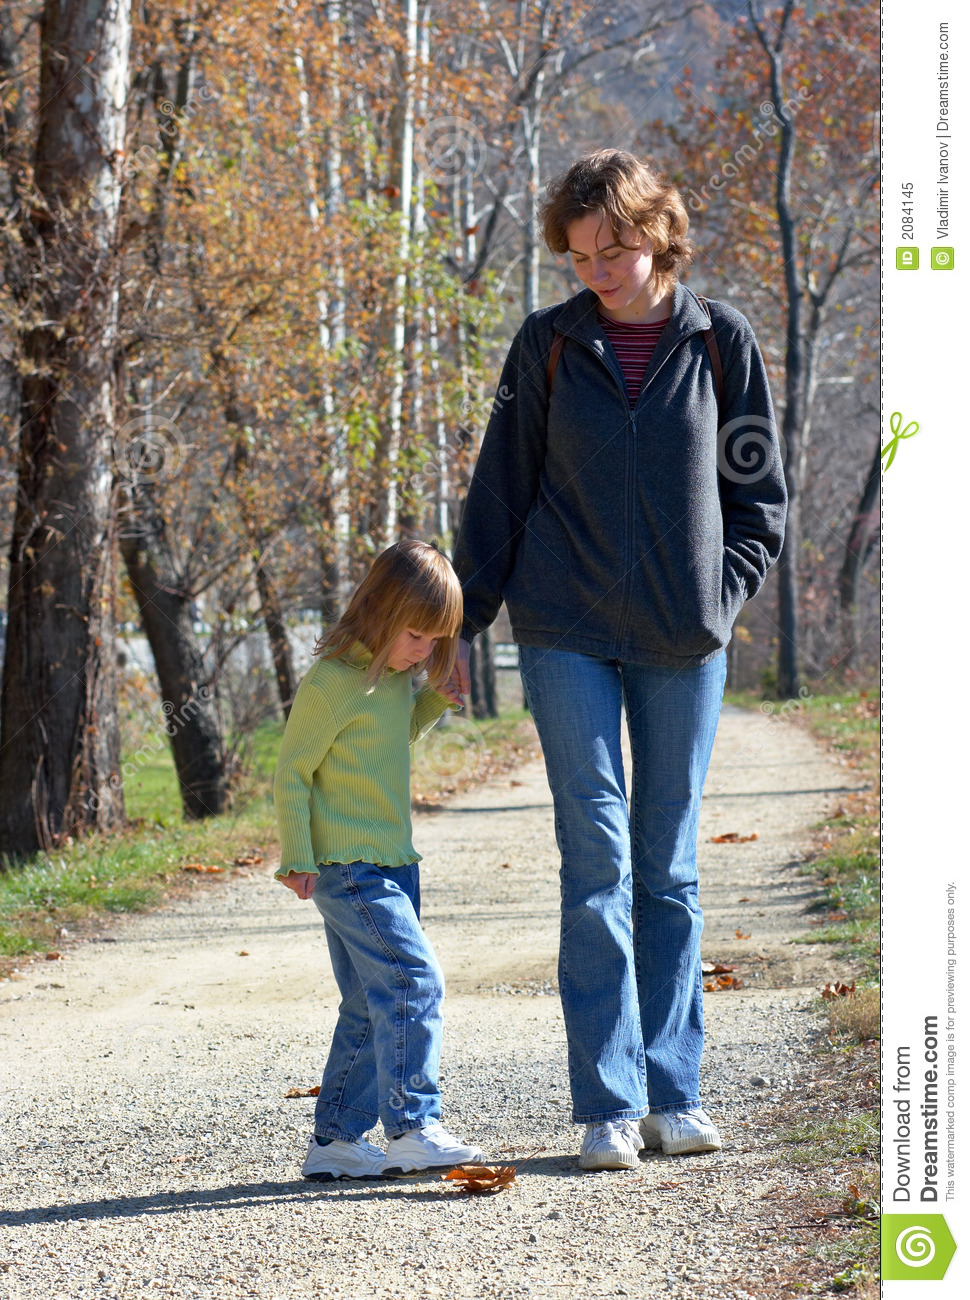 Mom with daughter in the park